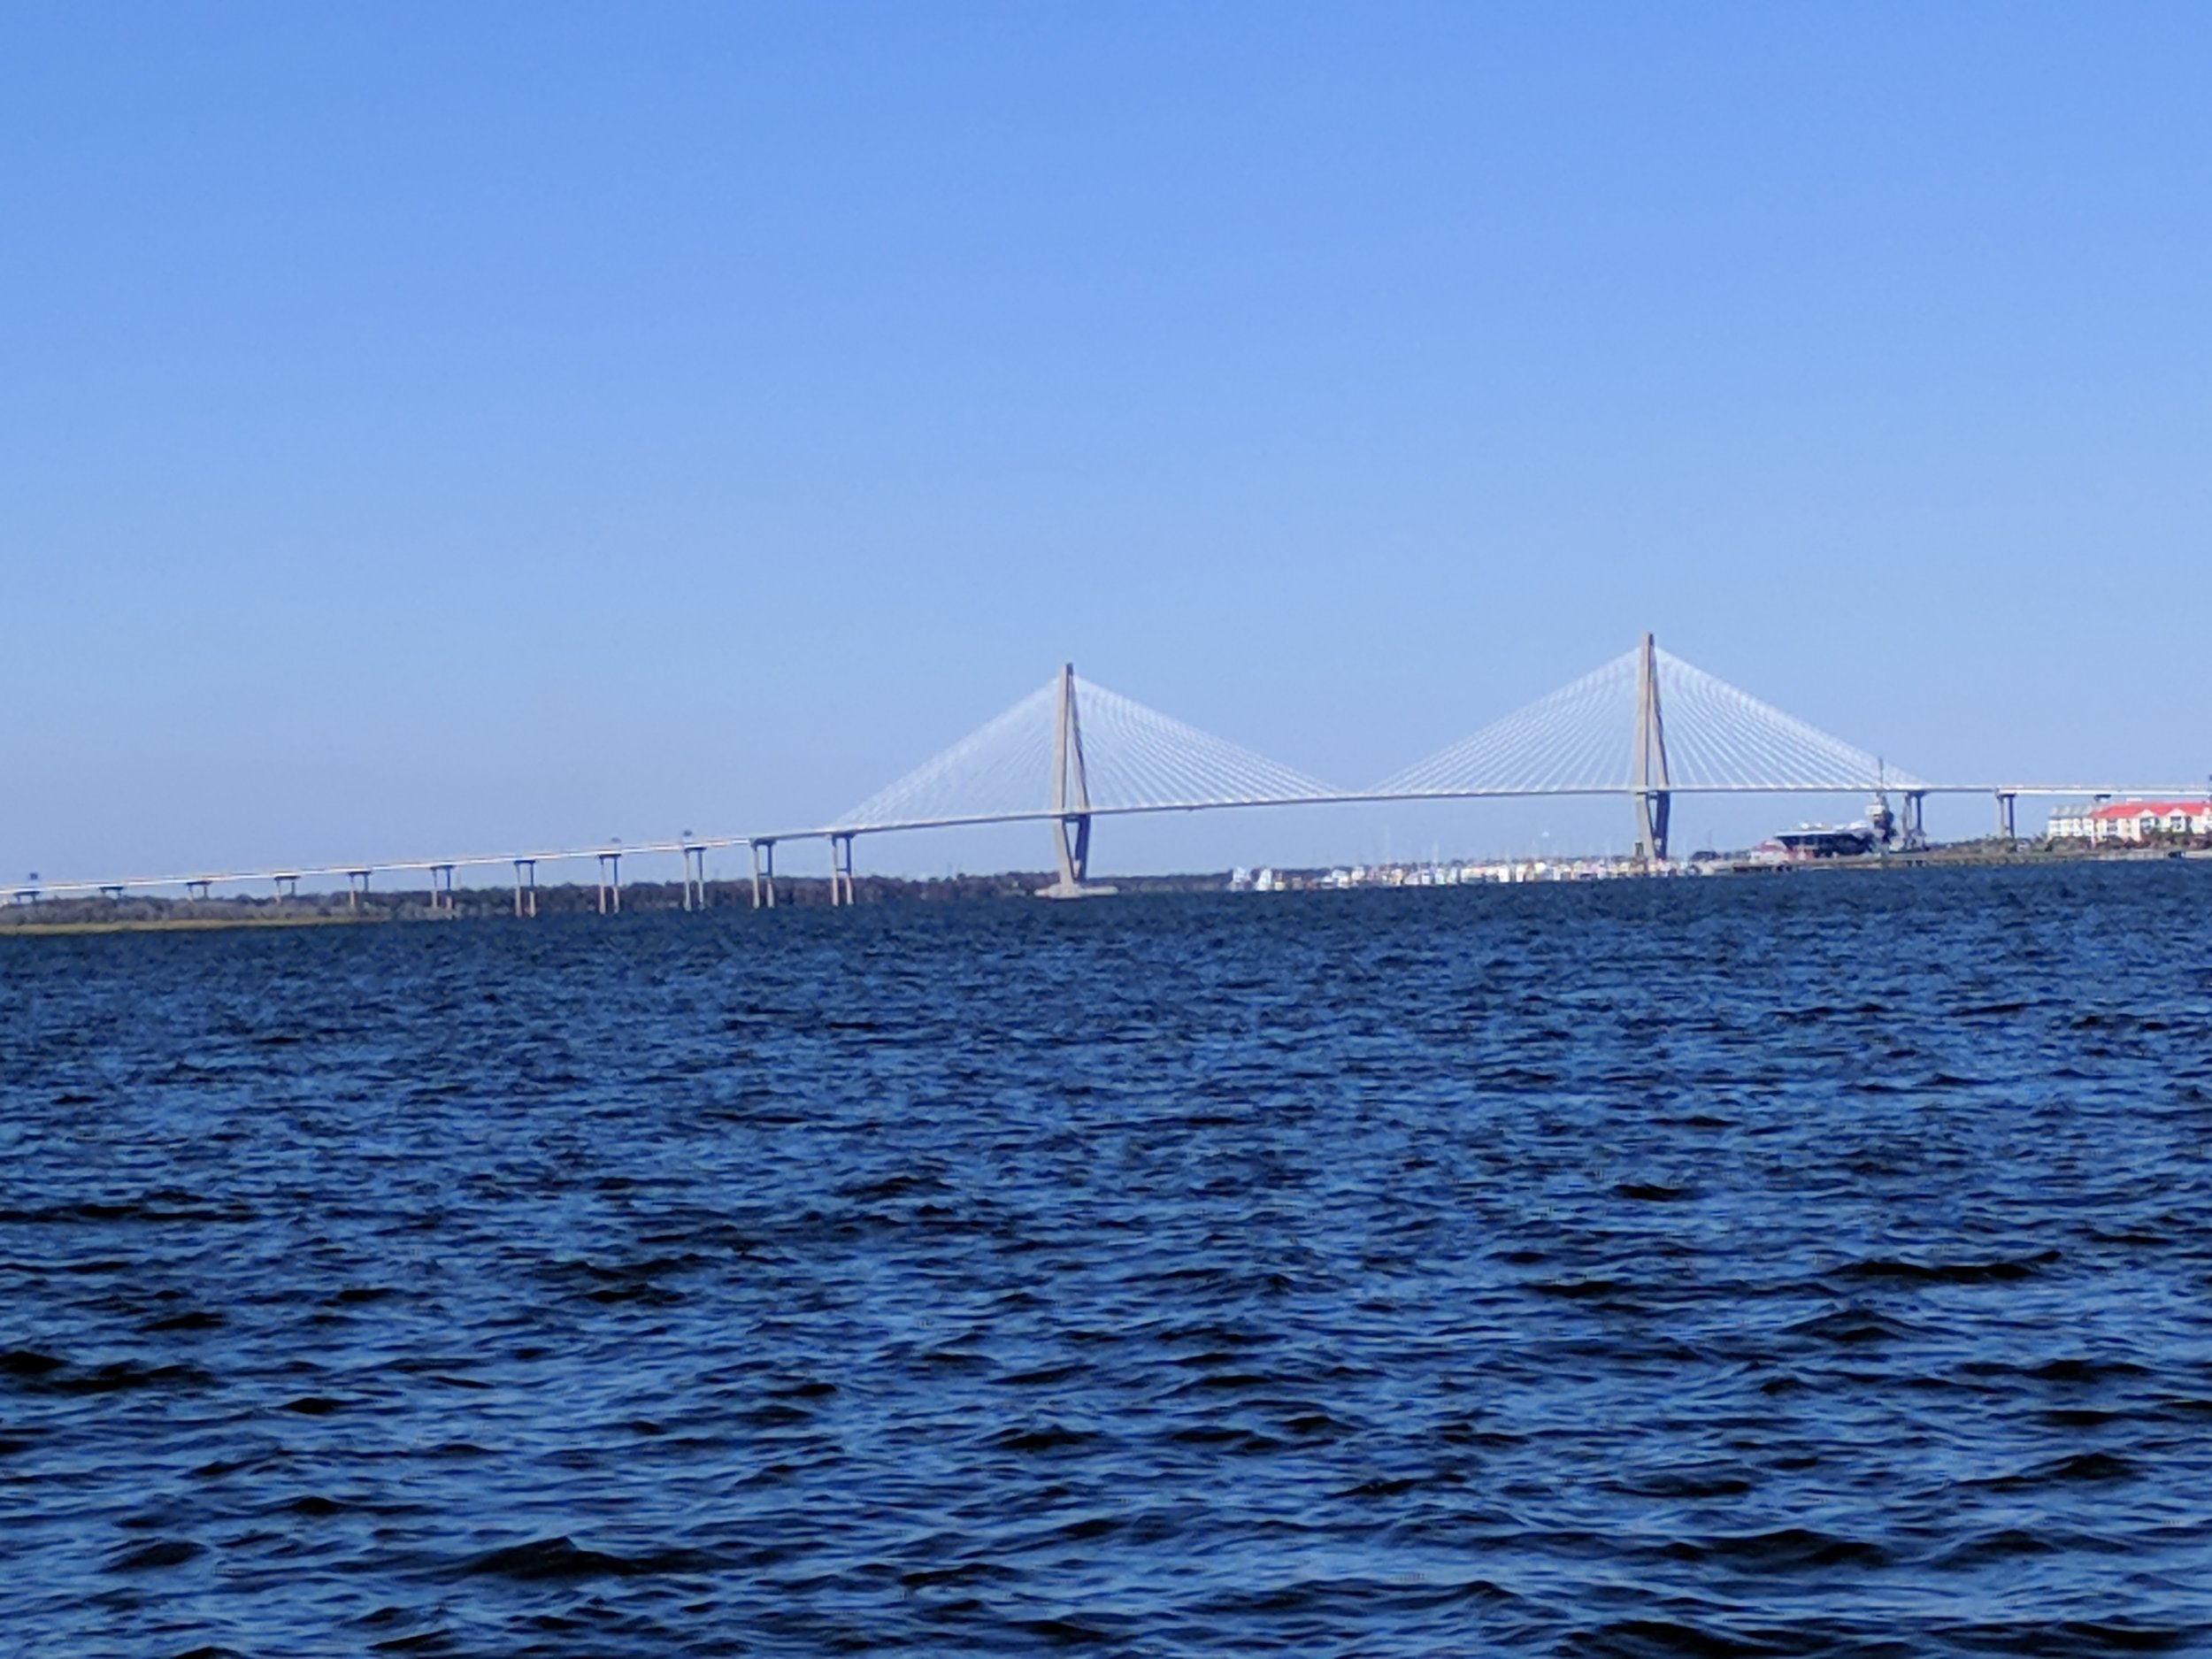 This lovely bridge connects Charleston.